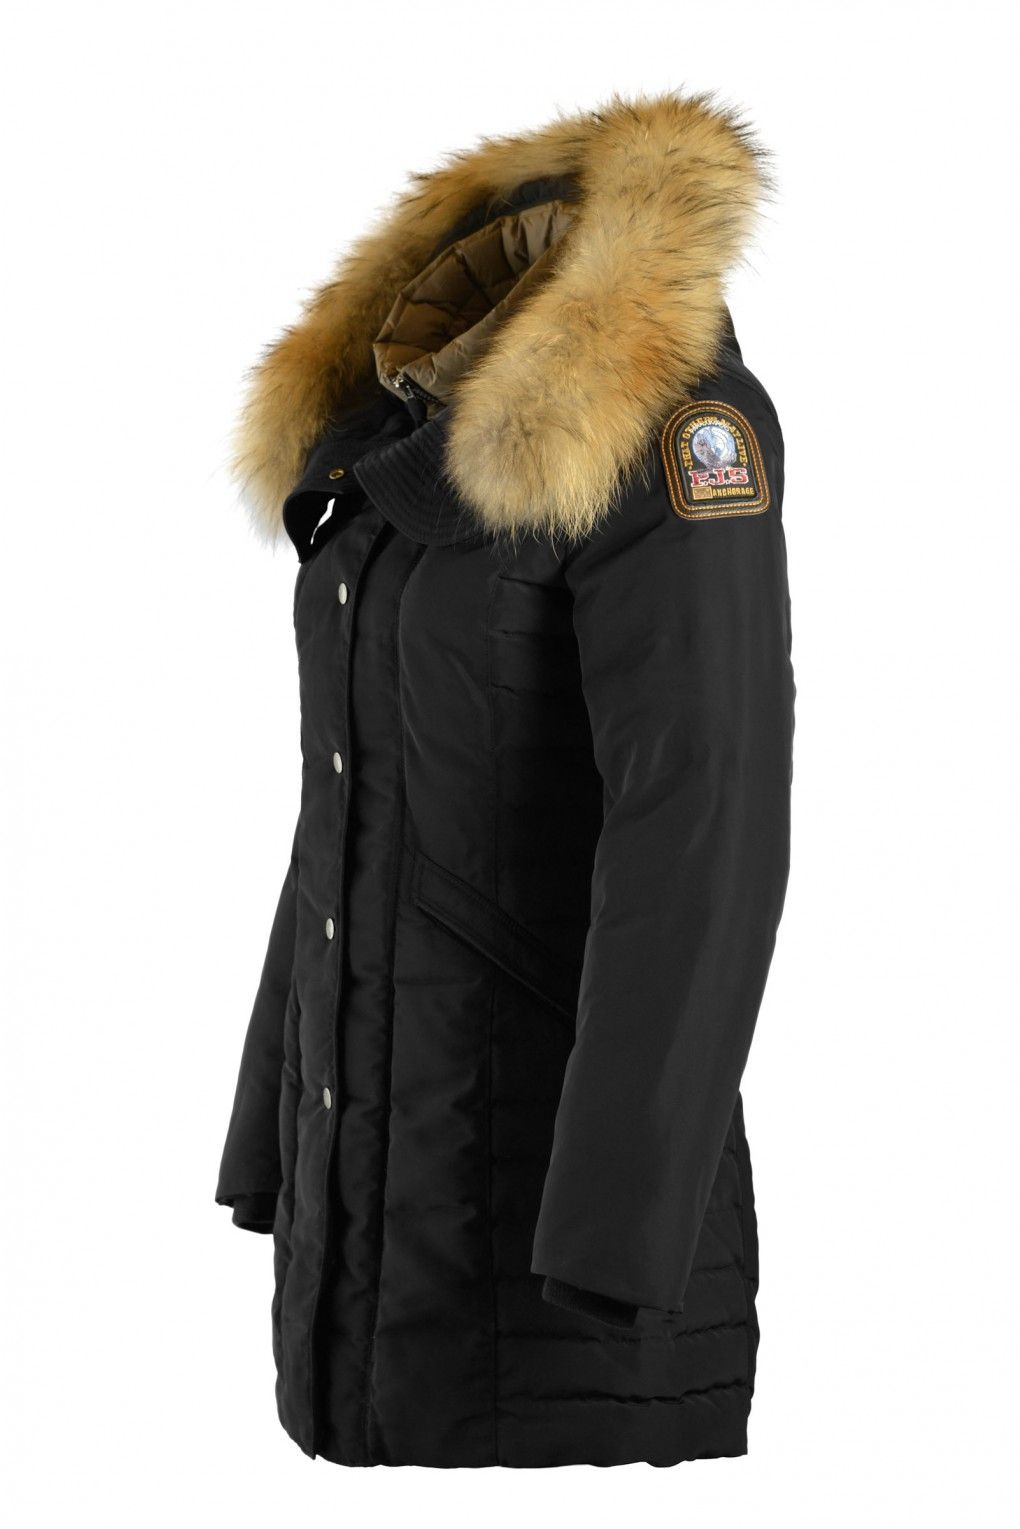 ... Woman,Best Quality Parajumpers Website,Official Parajumpers Website And Parajumpers Women Outlet For Men,Women And Kid From Parajumpers Sale Toronto ...